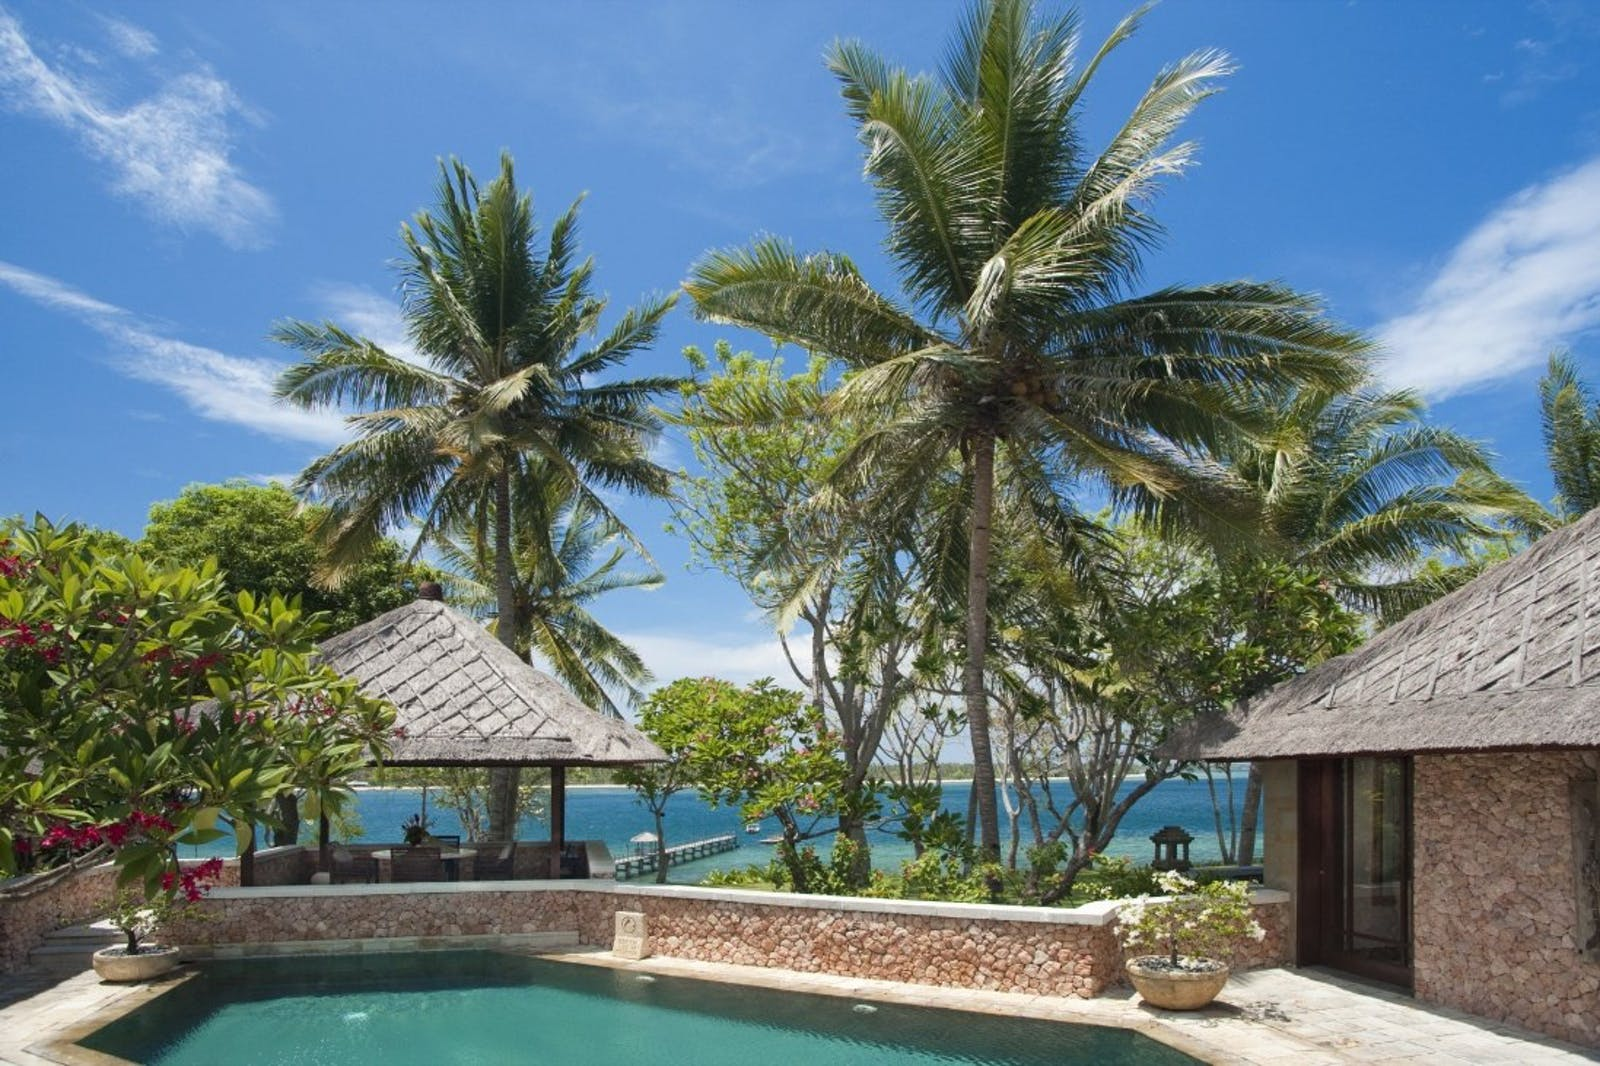 Villa with Pool at The Oberoi Lombok